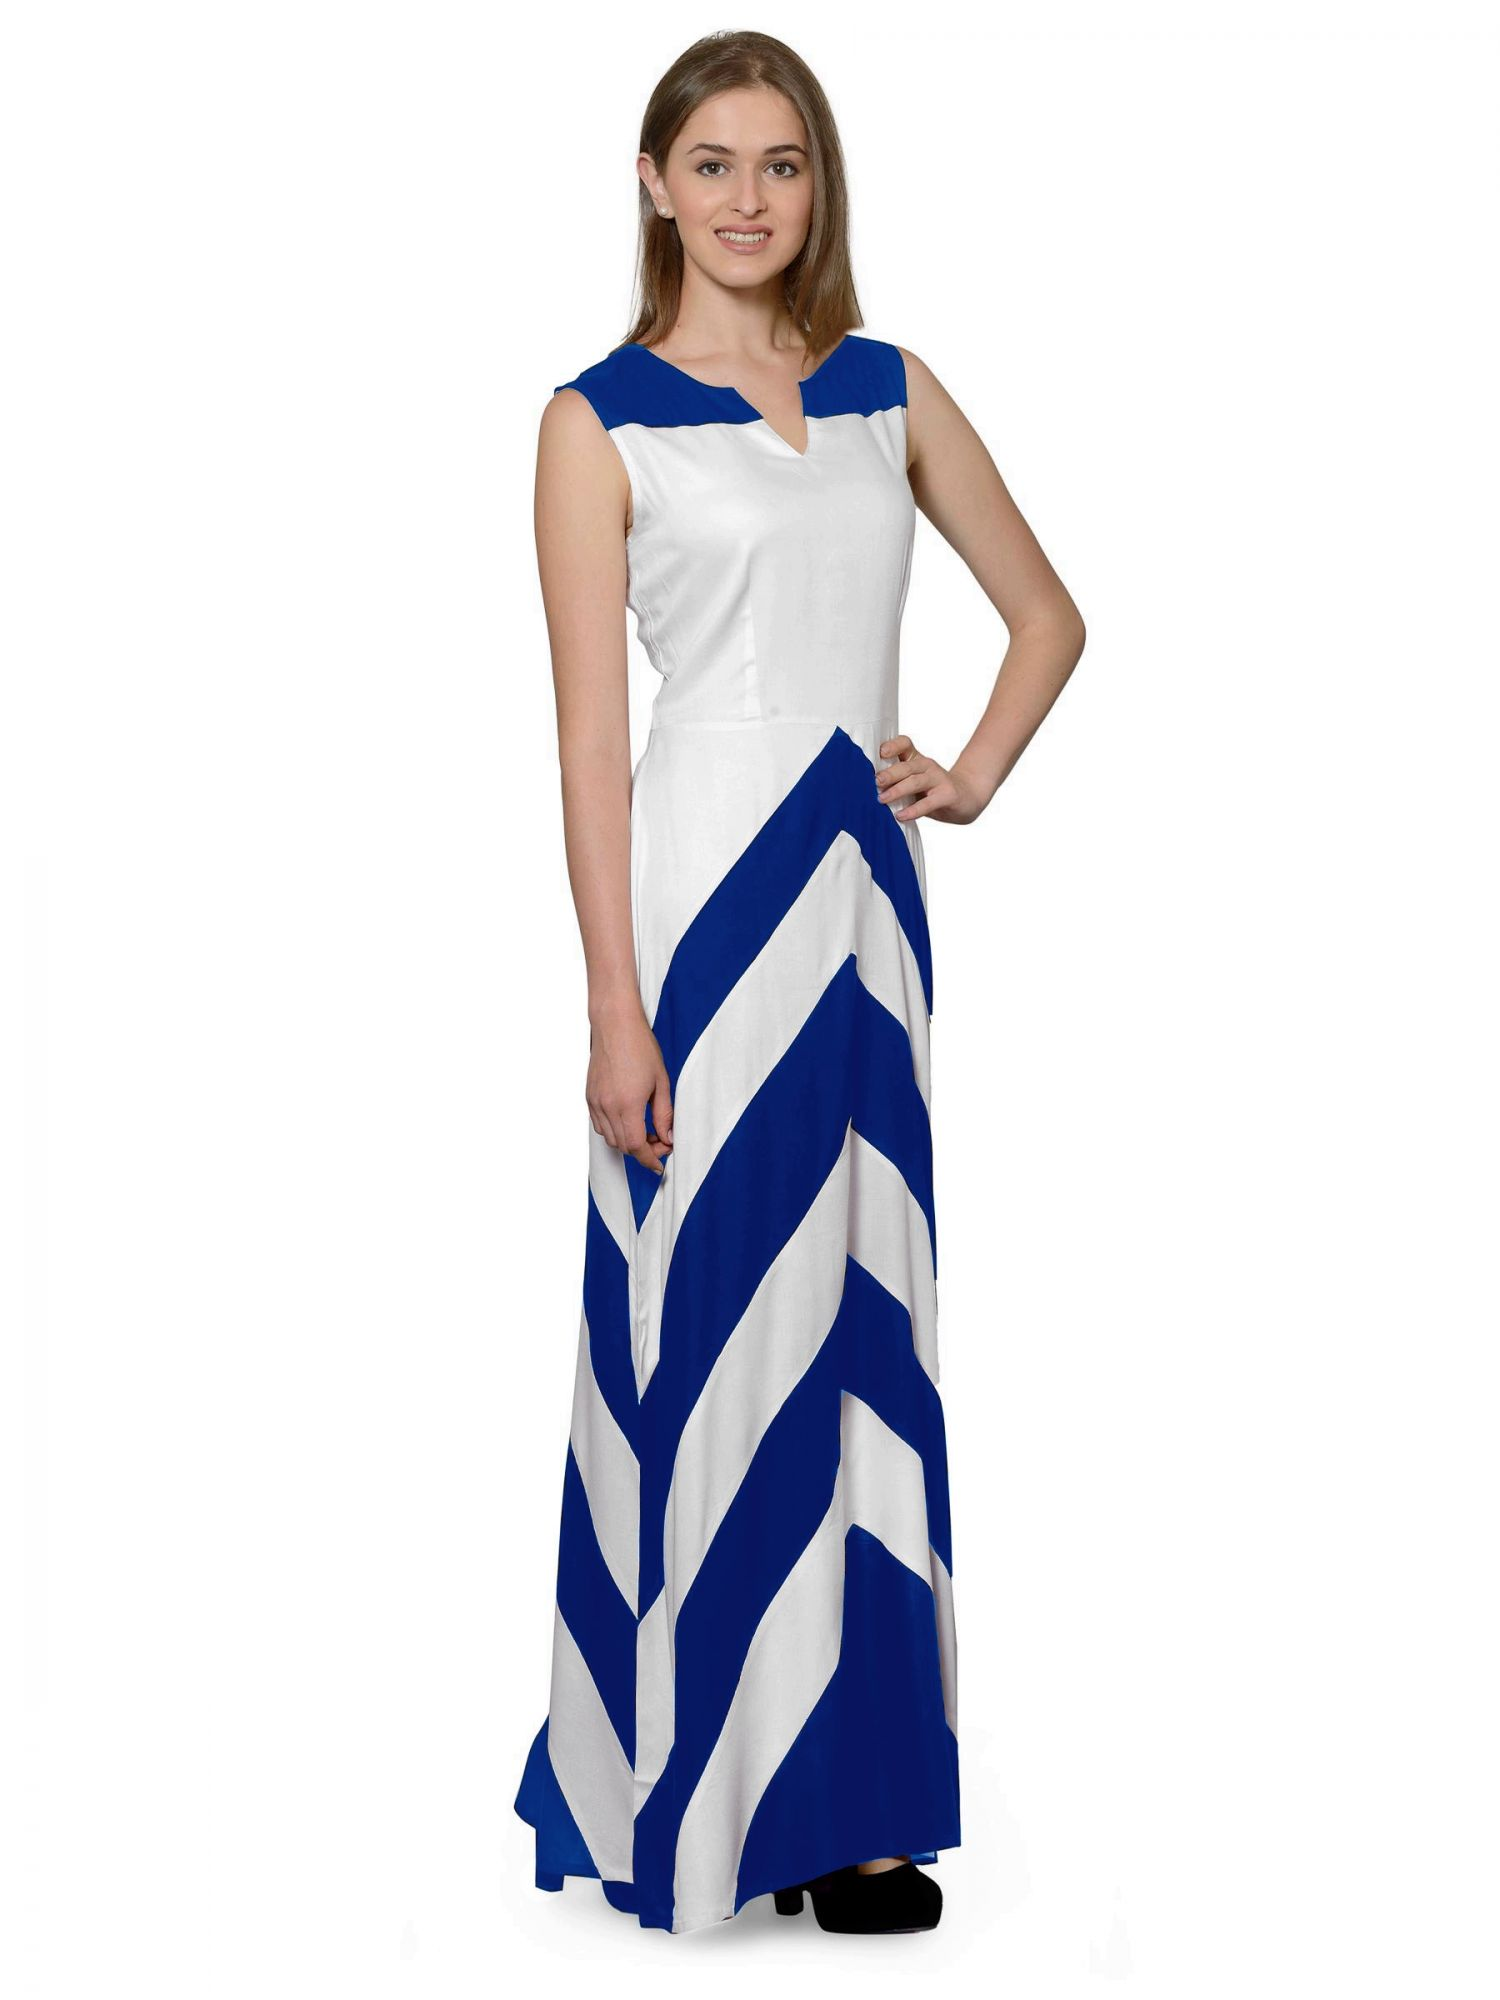 Color Block Empire Slim Fit Maxi Dress in Turquoise Blue:White